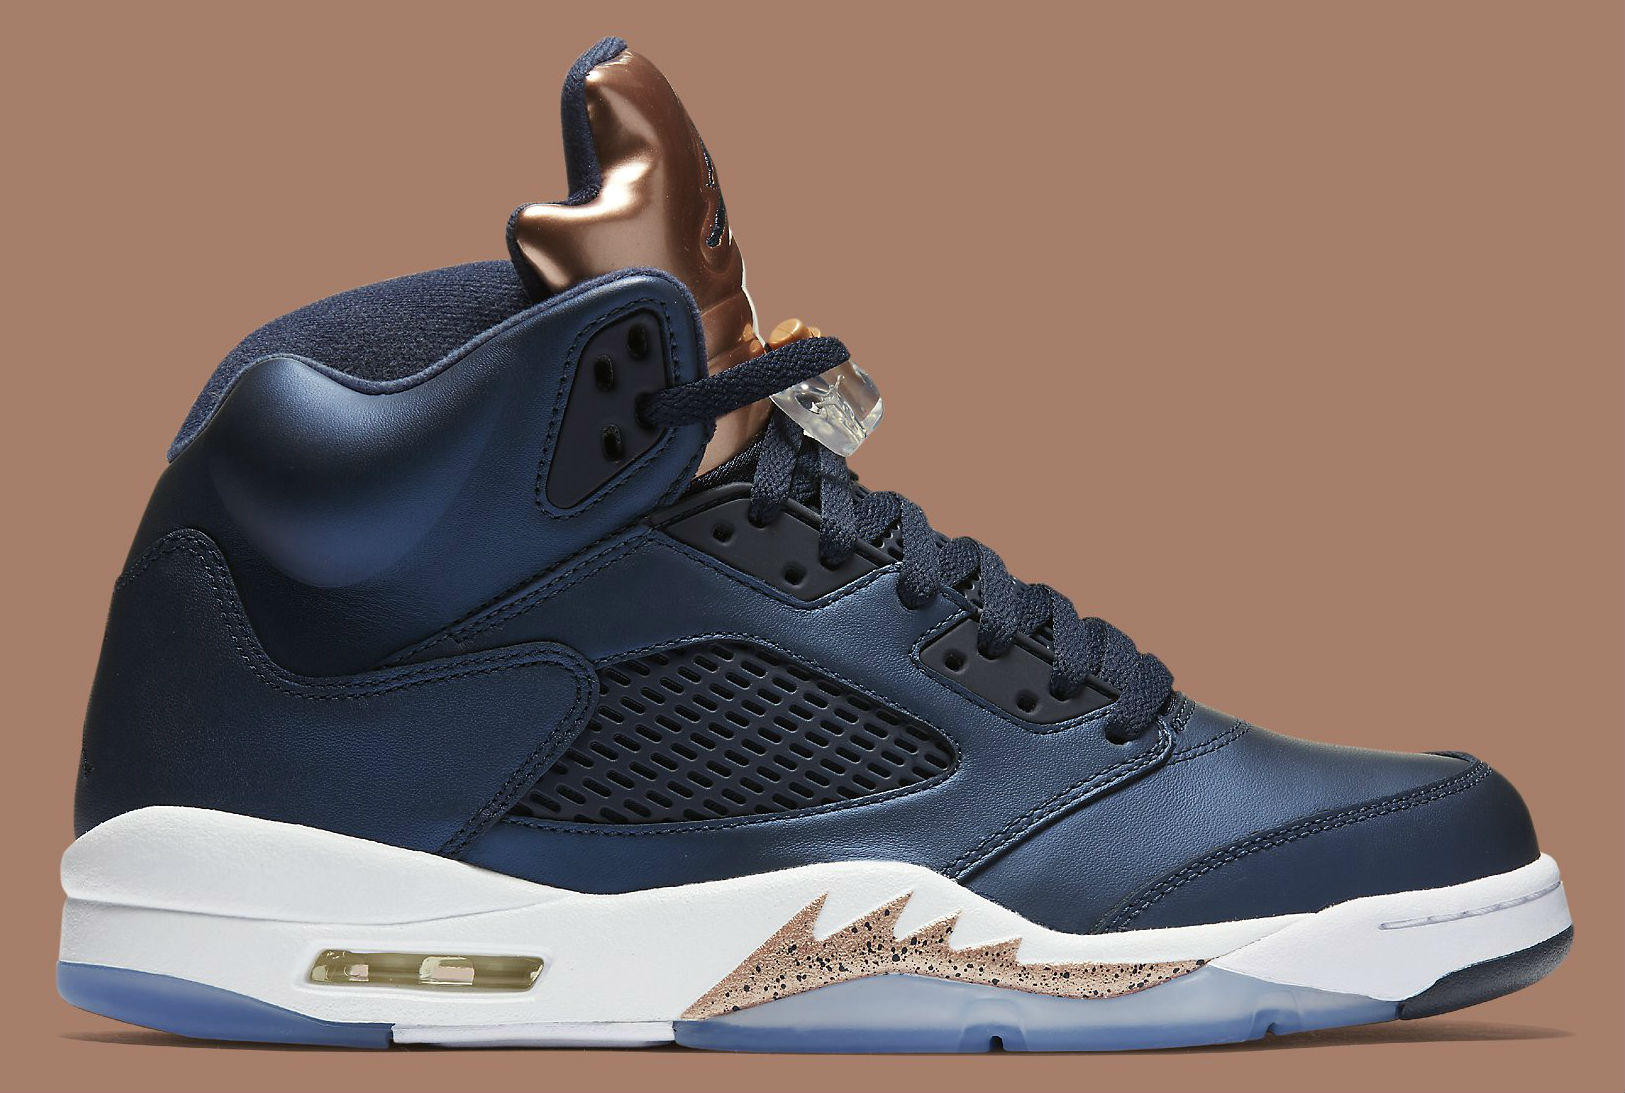 087bd33aa35d8 Air Jordan 5 Bronze Side 136027-416